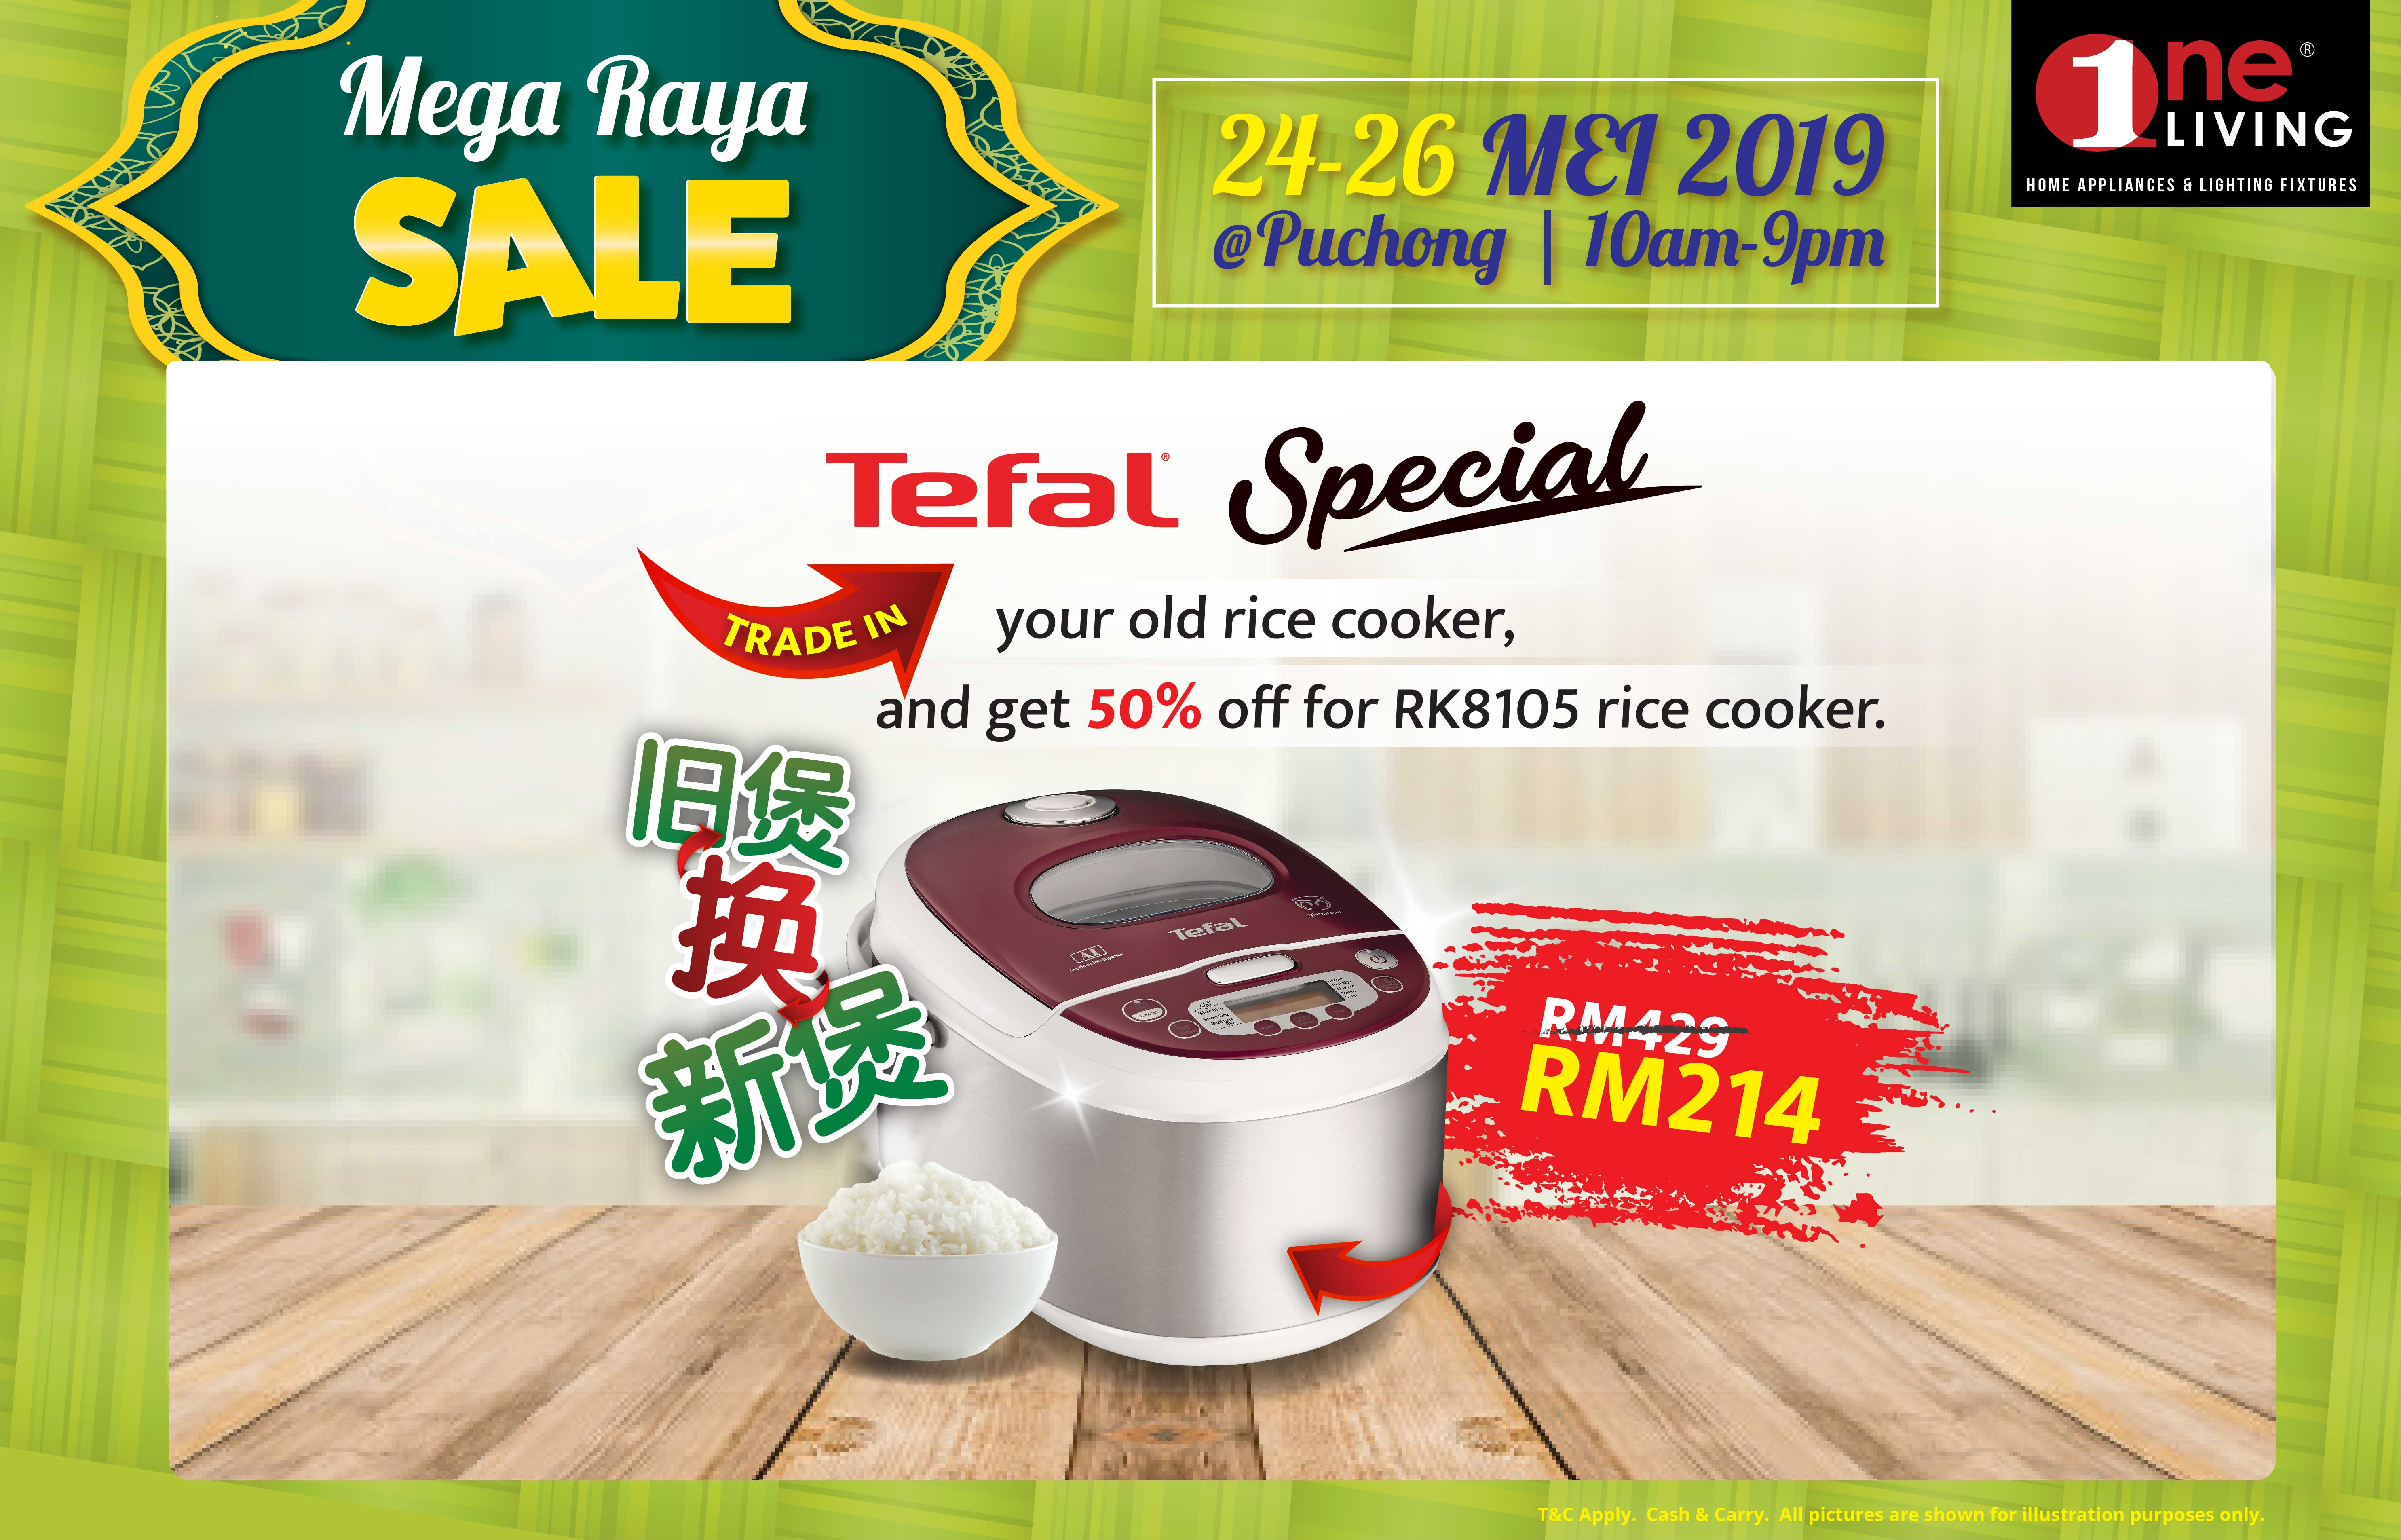 Spruce Up Your Home For Raya With New Appliances At One